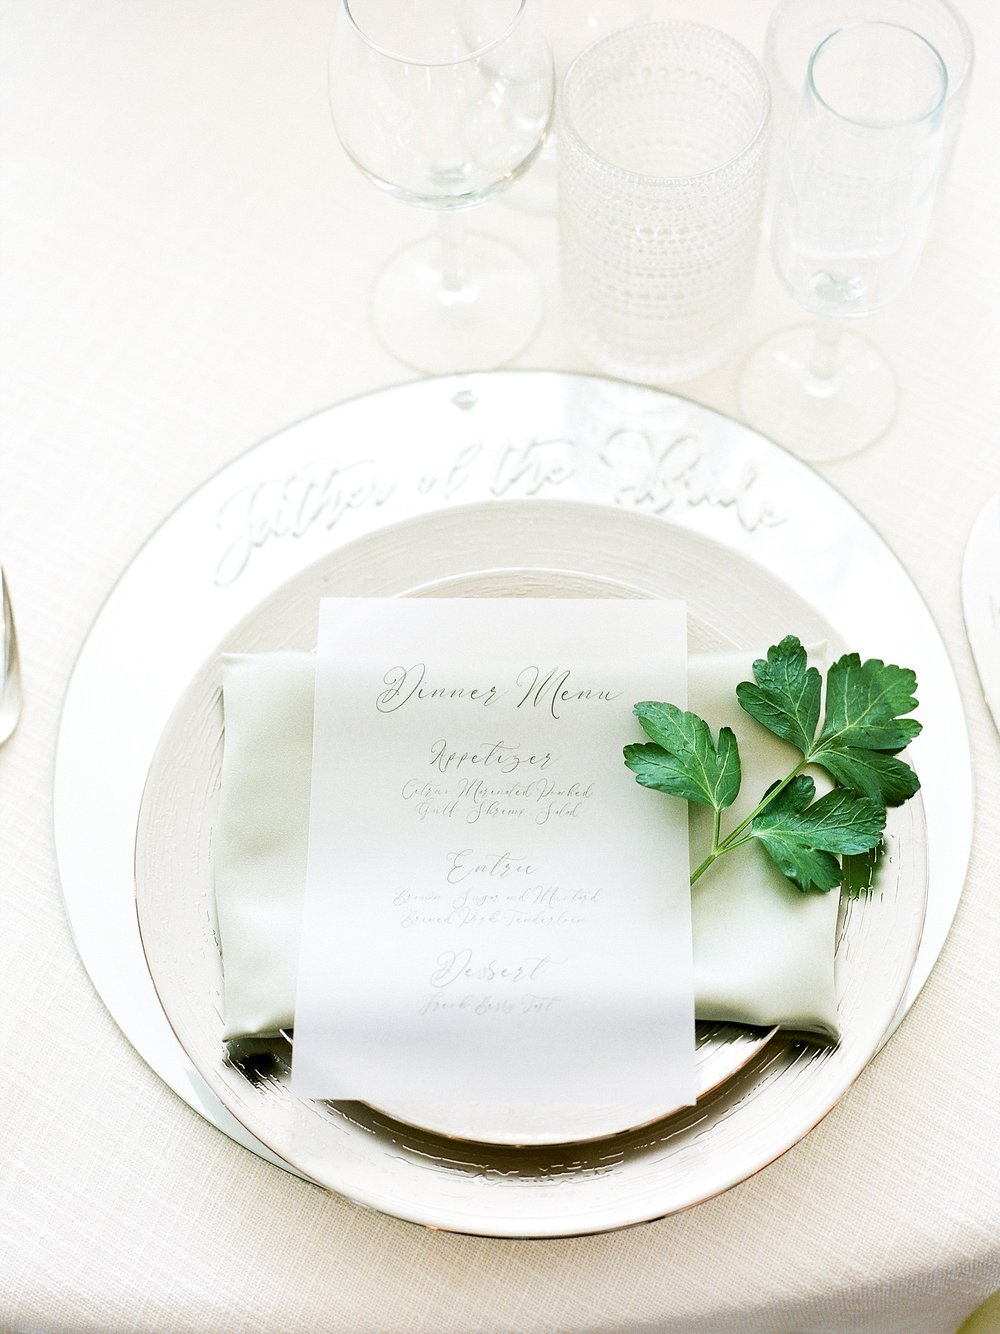 Textural Organic Wedding in All White Venue by Kelsi Kliethermes Wedding Photographer - Missouri, Midwest, and Destinations_0130.jpg